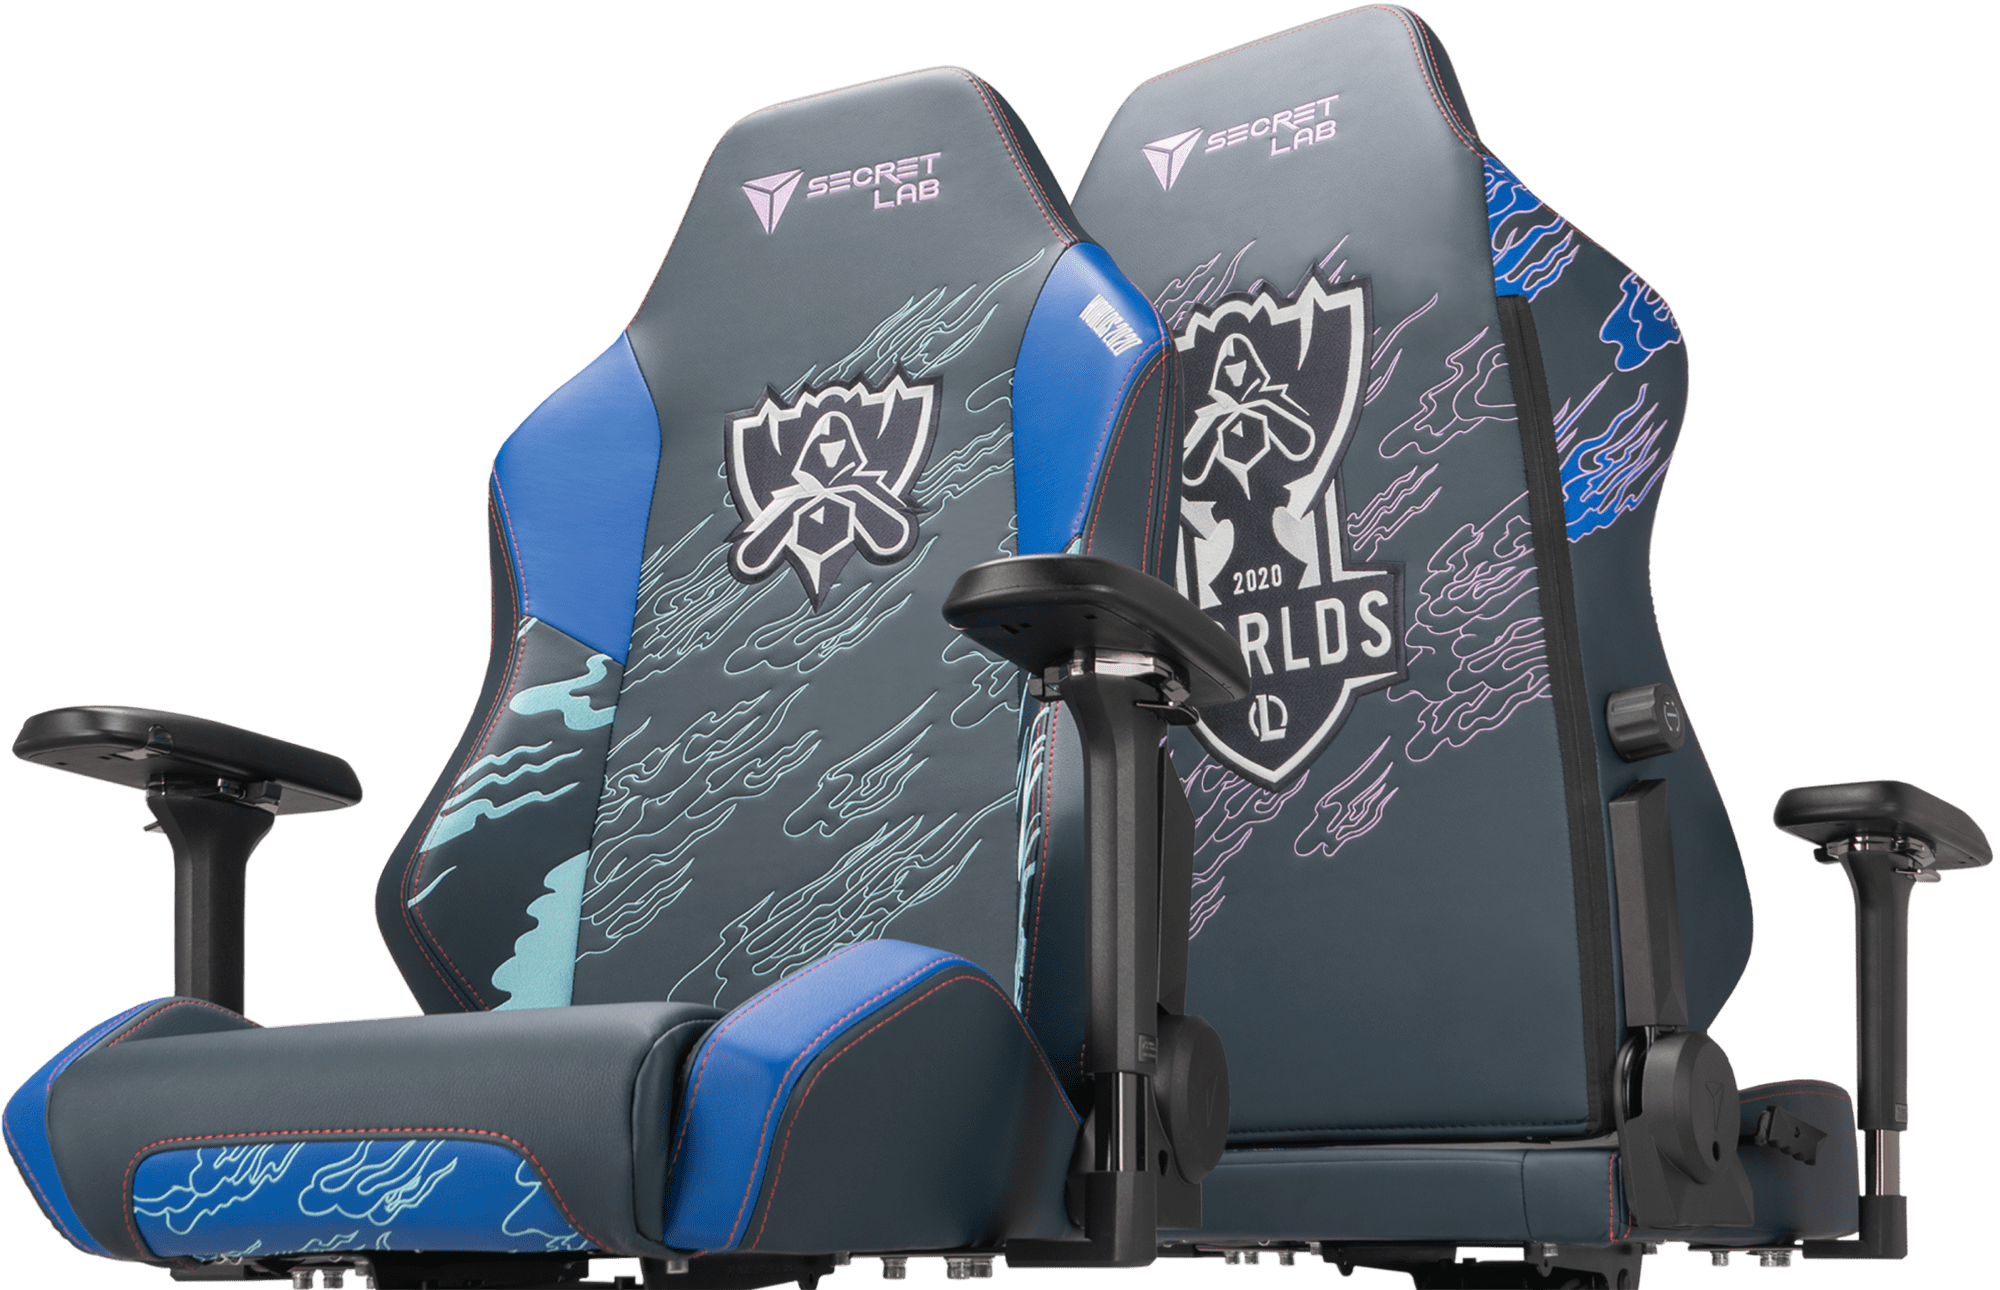 Secretlab x Worlds 2020 - OMEGA and TITAN Special Edition Gaming Chairs